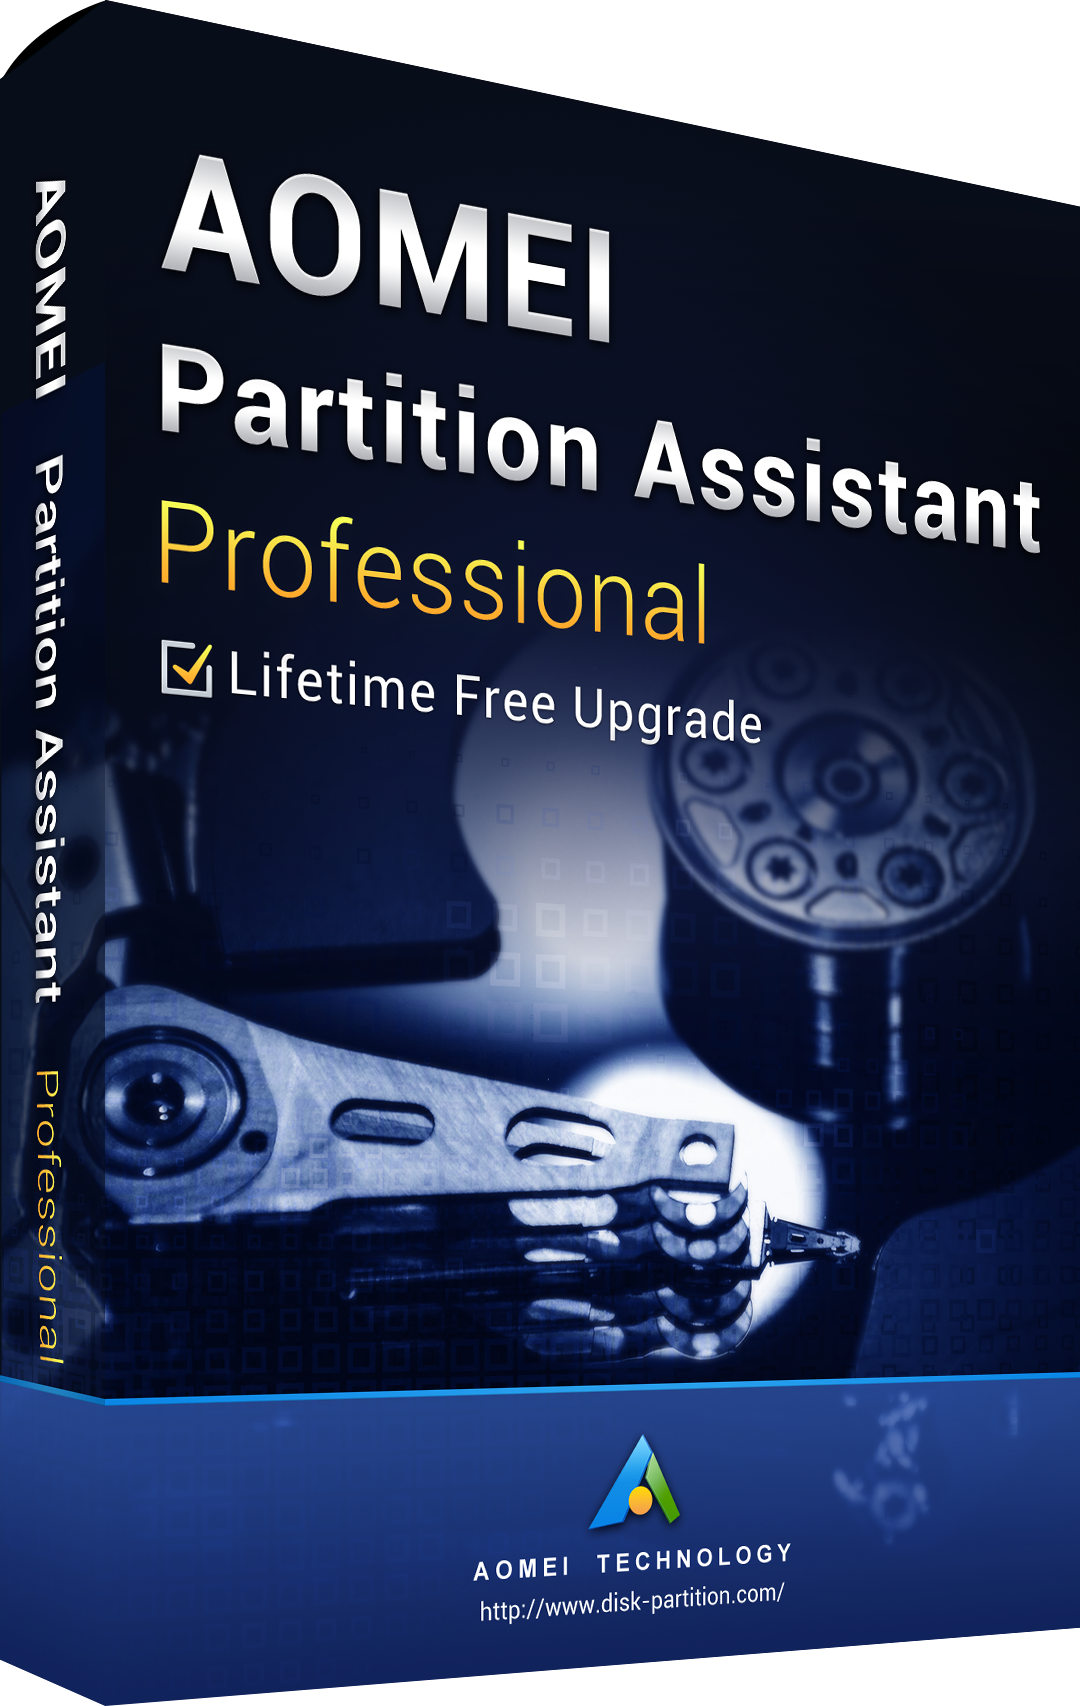 AOMEI Partition Assistant Professional + Free Lifetime Upgrades 8.8 Key Global